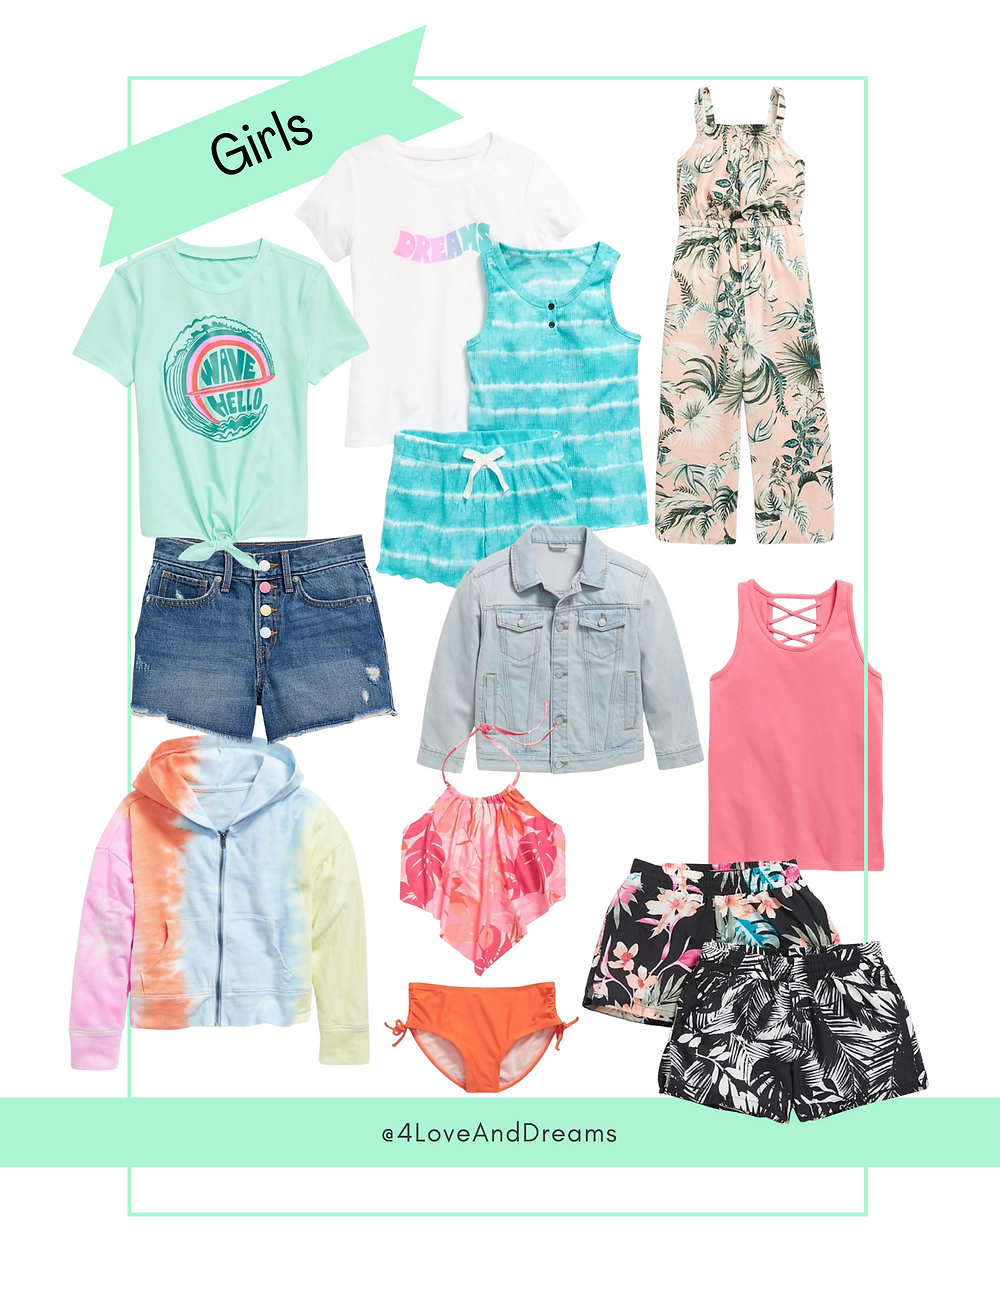 girls vacation outfits.  family vacation, summer looks. old navy fashion. girls fashion. swimsuits for girls.